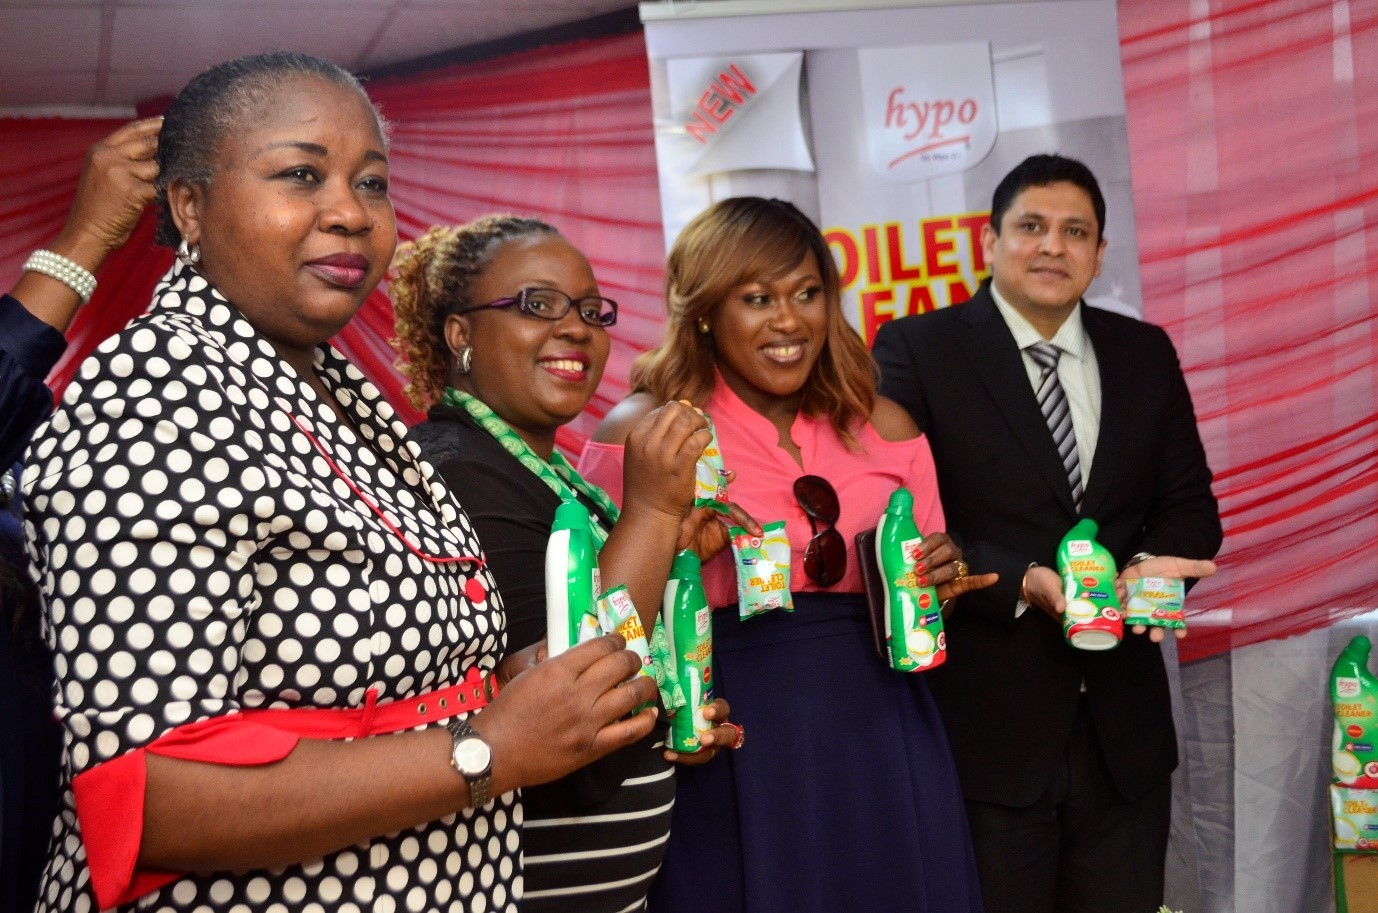 Hypo commemorates World Toilet Day with new product